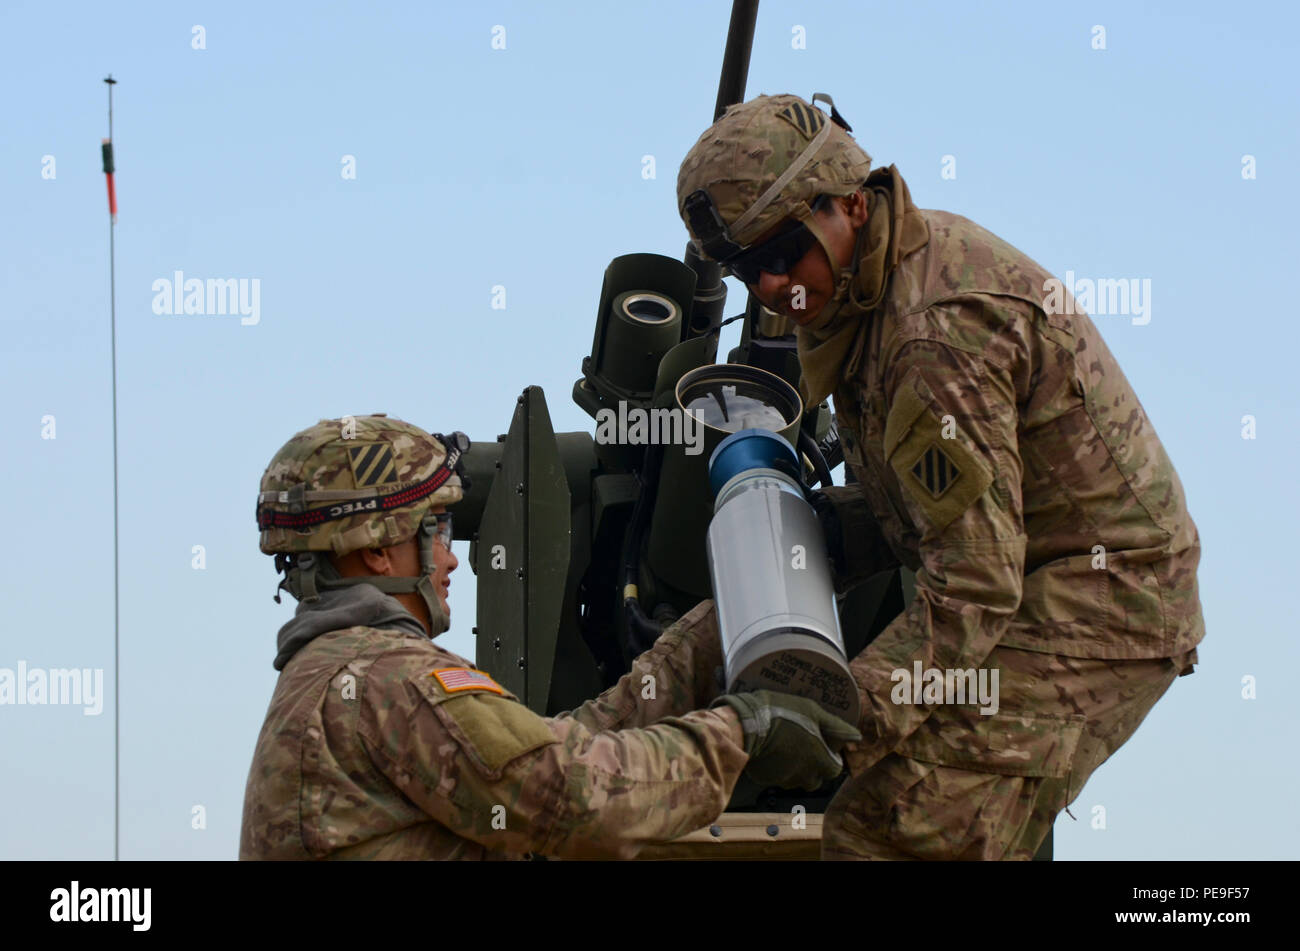 2nd Lt. Hemaloto Tatafu, a Delta platoon leader, from Kahuku, Hawaii, hands a 120mm round to Spc. Miguel Romero, an M1A2 System Enhancement Package Version 2 Abram Tank gunner, originally from Los Angeles, both of 1st Armored Brigade Combat Team, attached to 5th Squadron, 7th Cavalry Regiment, 3rd Infantry Division, stationed at Fort Stewart, Ga., during a field training exercise in support of Operation Atlantic Resolve at Novo Selo Training Center, Bulgaria, Nov. 17, 2015. (U.S. Army photo by Staff Sgt. Steven M. Colvin/Released) - Stock Image